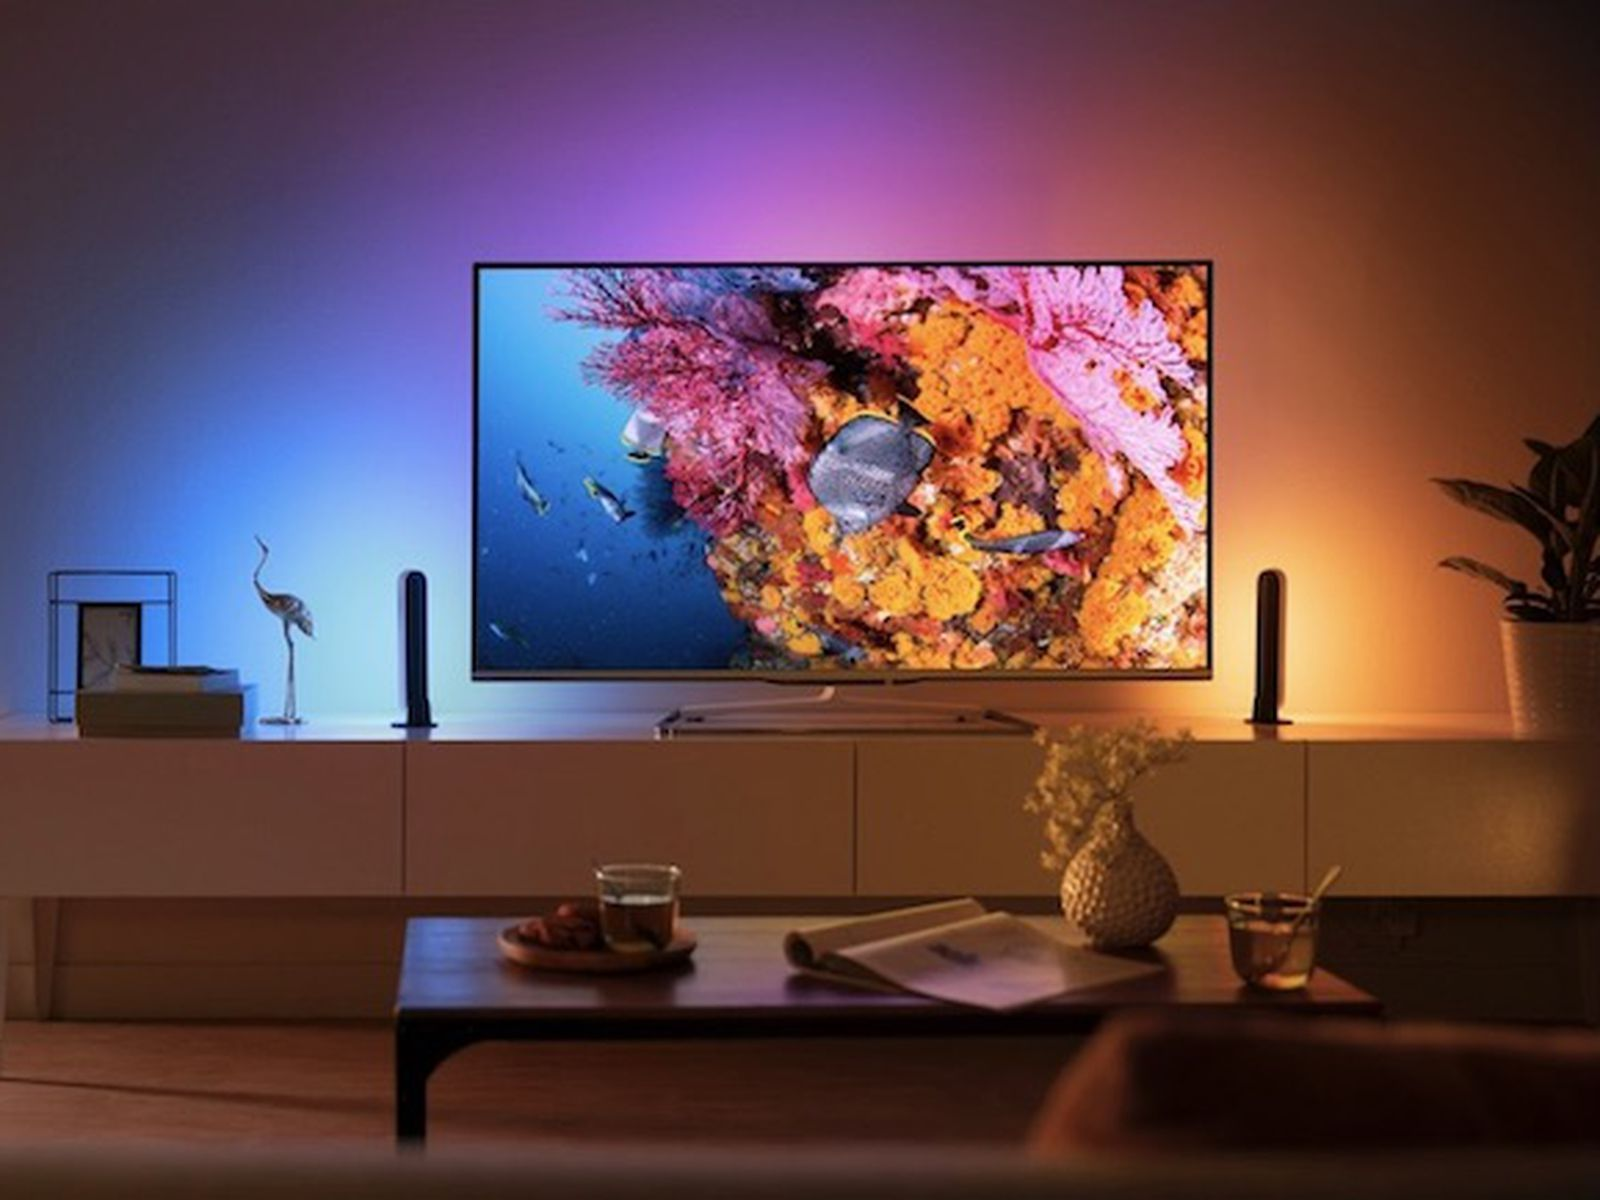 In the new Philips Hue lightstrip each LED can match your TV with various colors